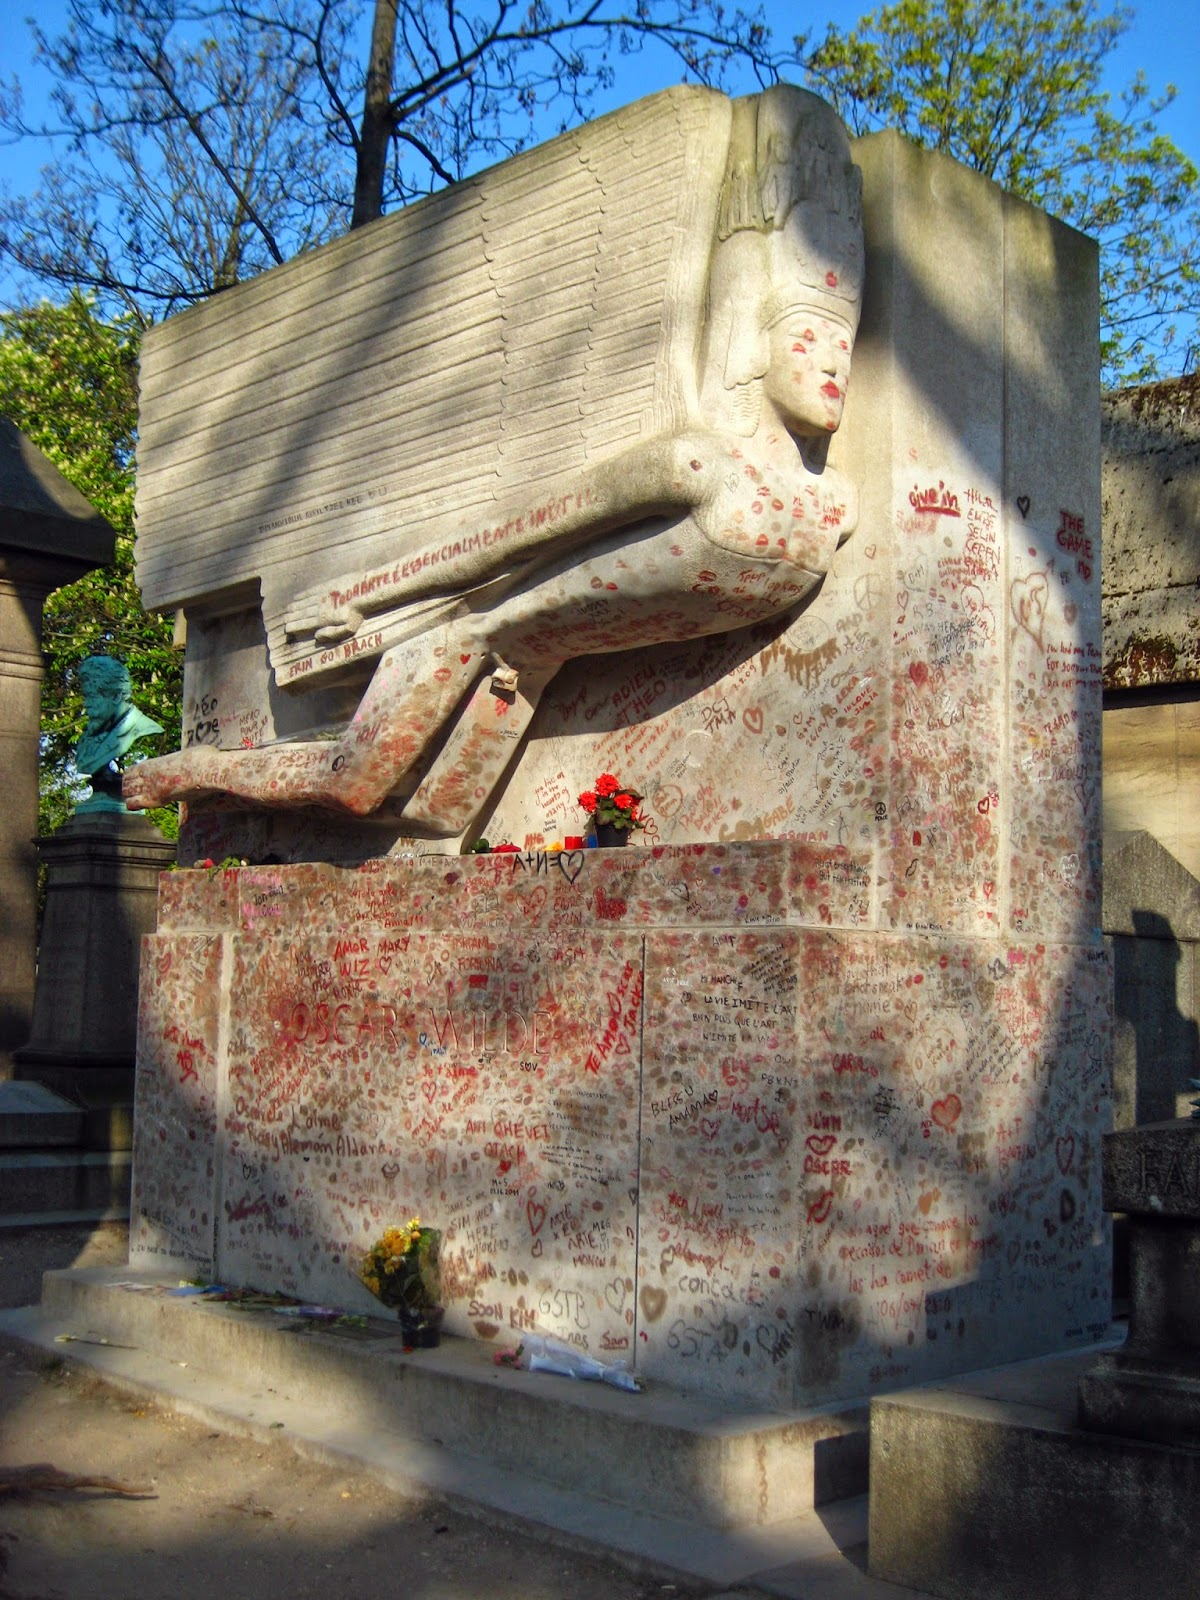 Oscar Wilde grave site at the Pere Lachaise Cemetary Paris, France